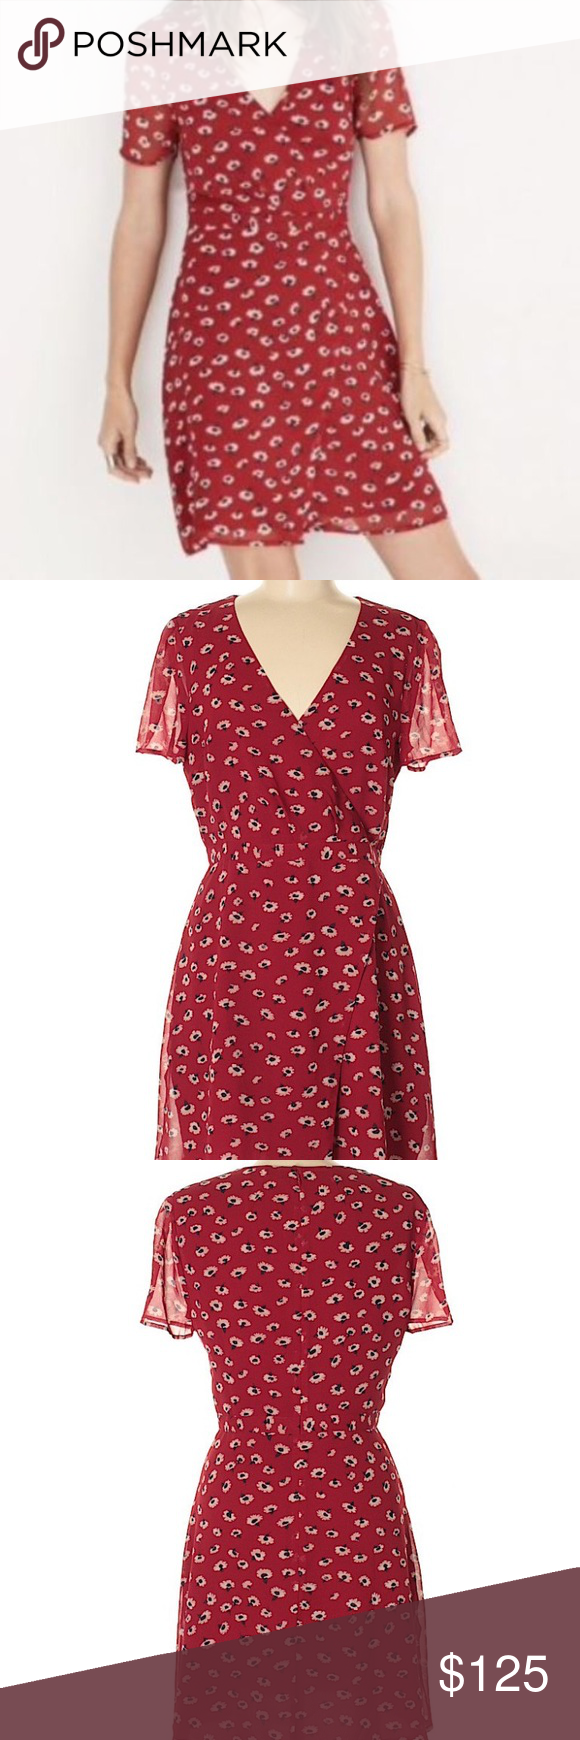 d24d8b3a58e Madewell Seattle floral faux-wrap dress in 6 Worn once! Rare and beautiful Madewell  dress Sold out online! Retail price  158 Madewell Dresses